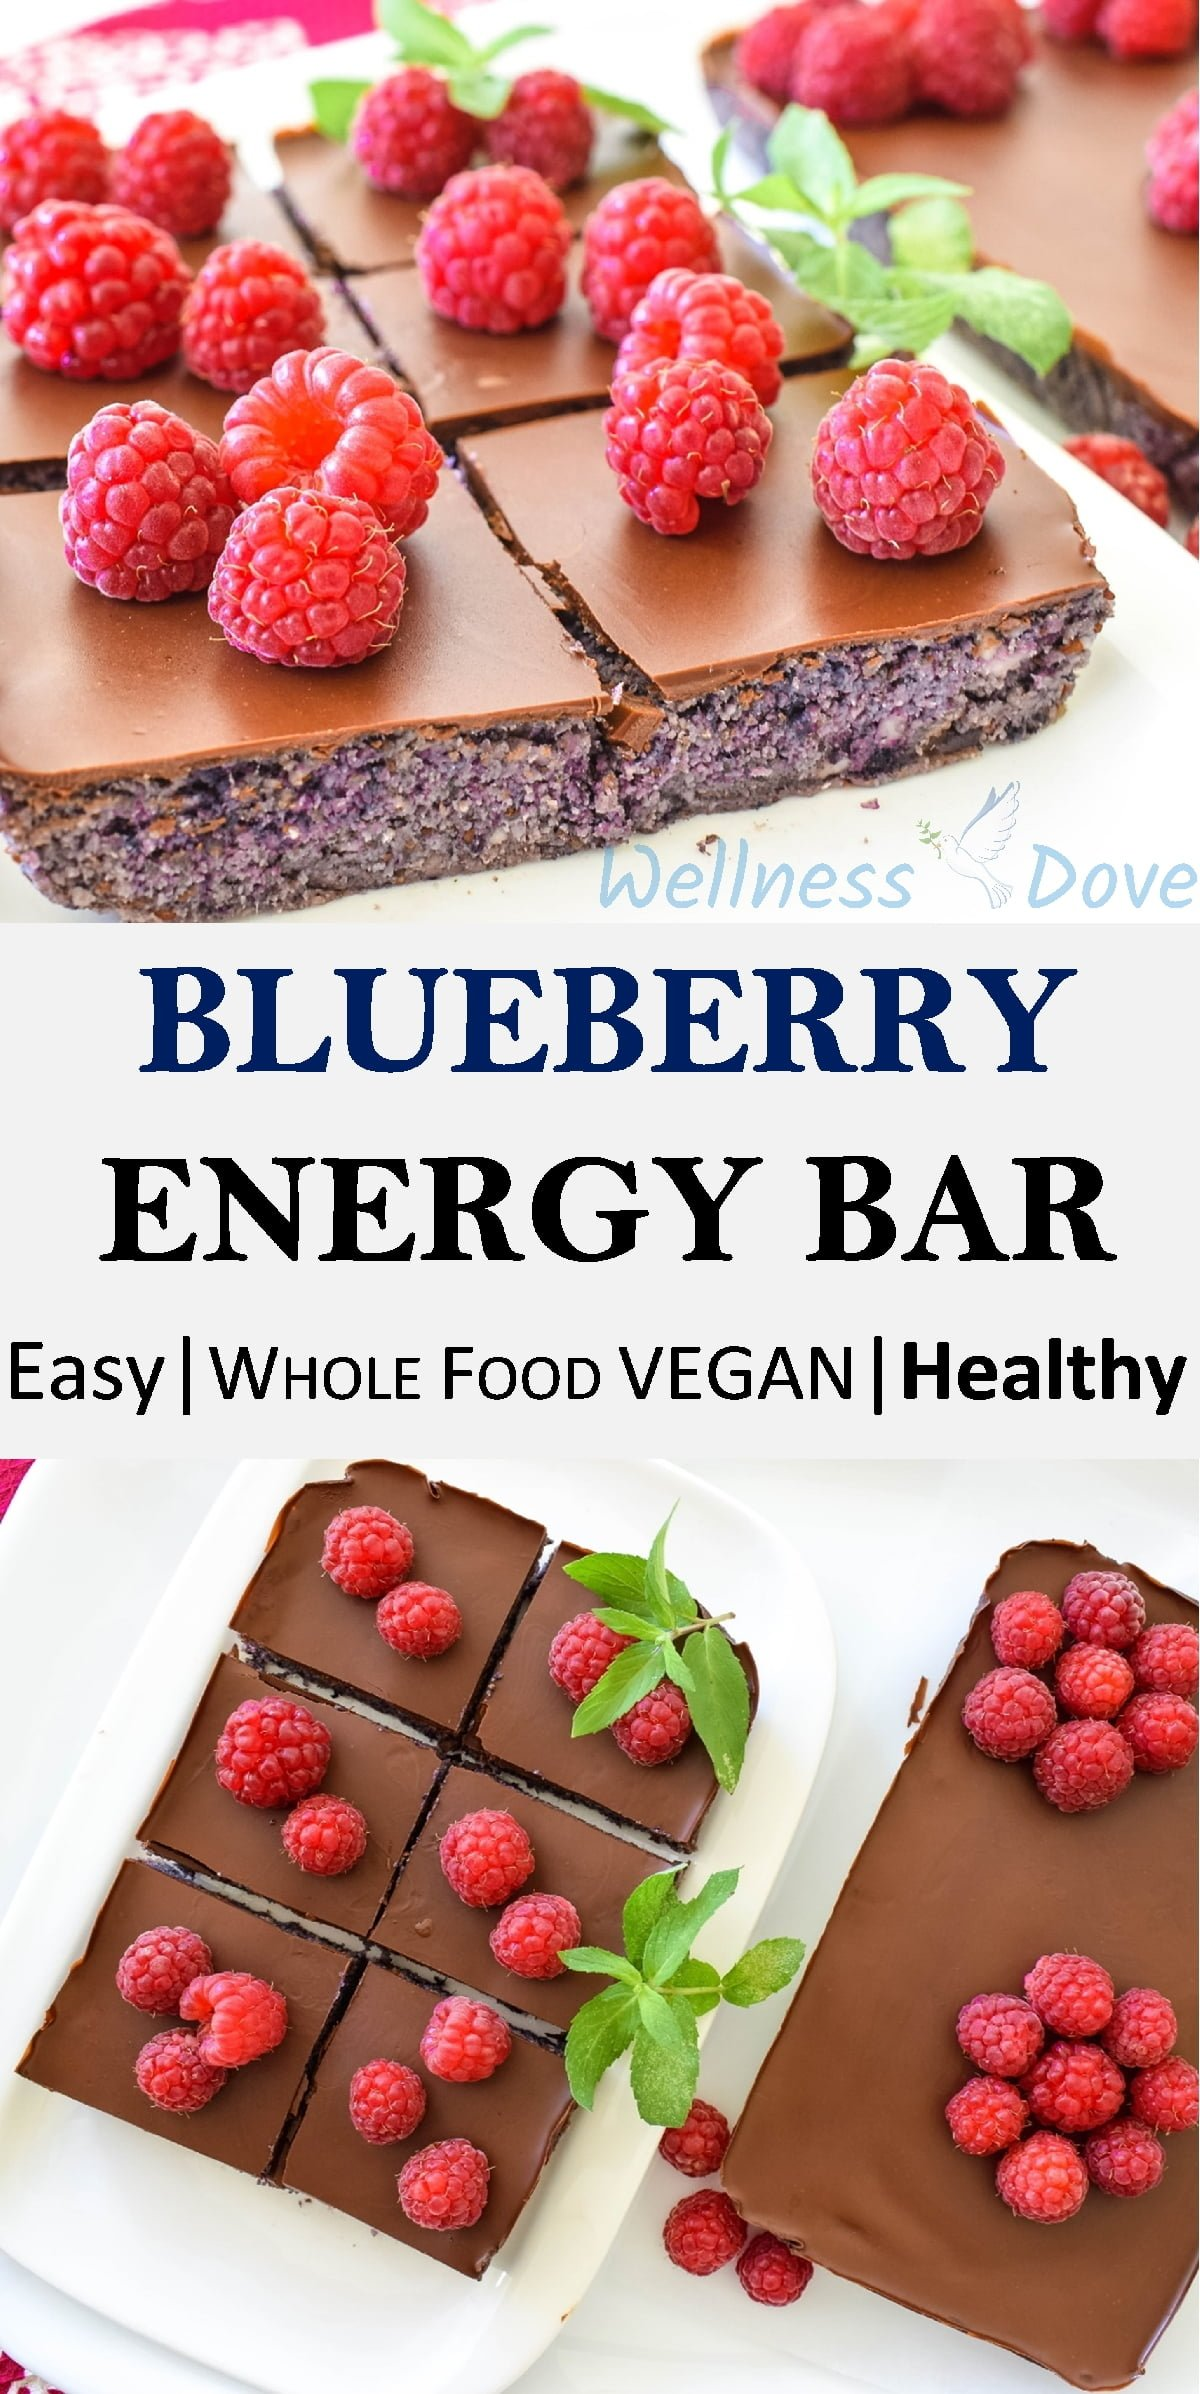 Fresh and raw vegan dessert that is super healthy! A homemade recipe, full of flavor, without any processed ingredients! A great snack for any time of the day!